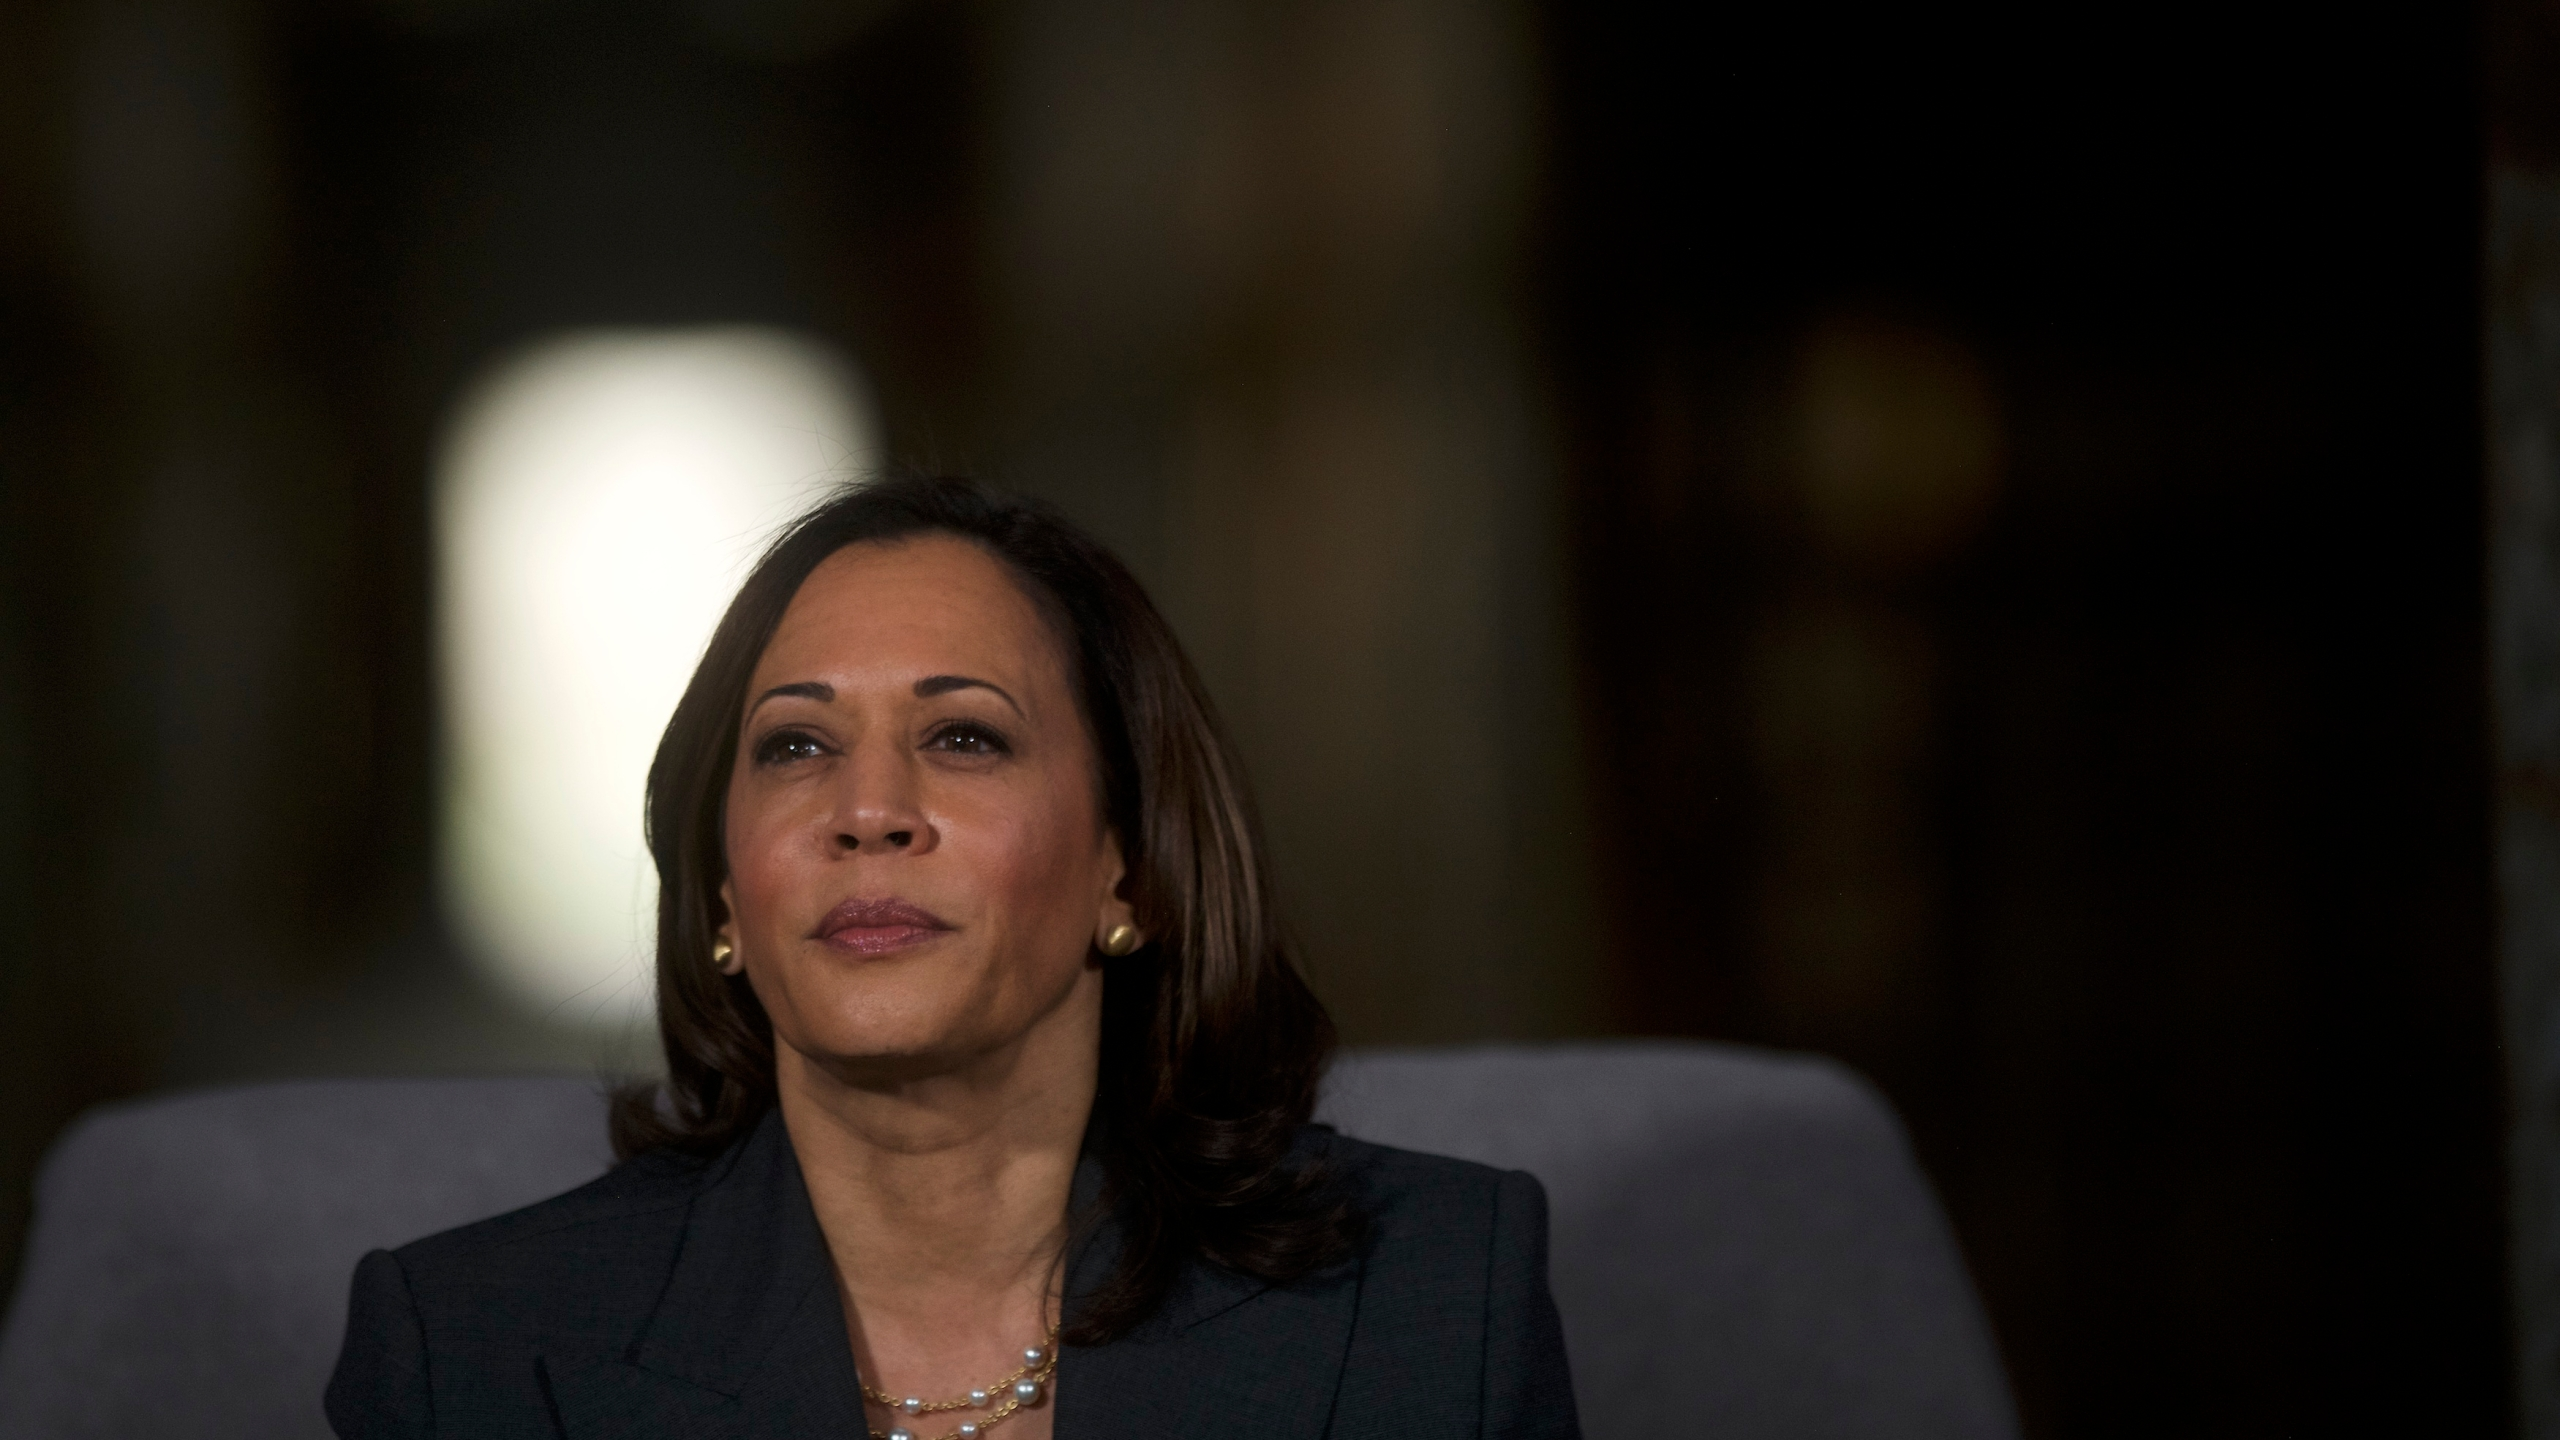 Sen. Kamala Harris appears at a town hall at the Eastern State Penitentiary on Oct. 28, 2019, in Philadelphia, Pennsylvania. (Mark Makela/Getty Images)